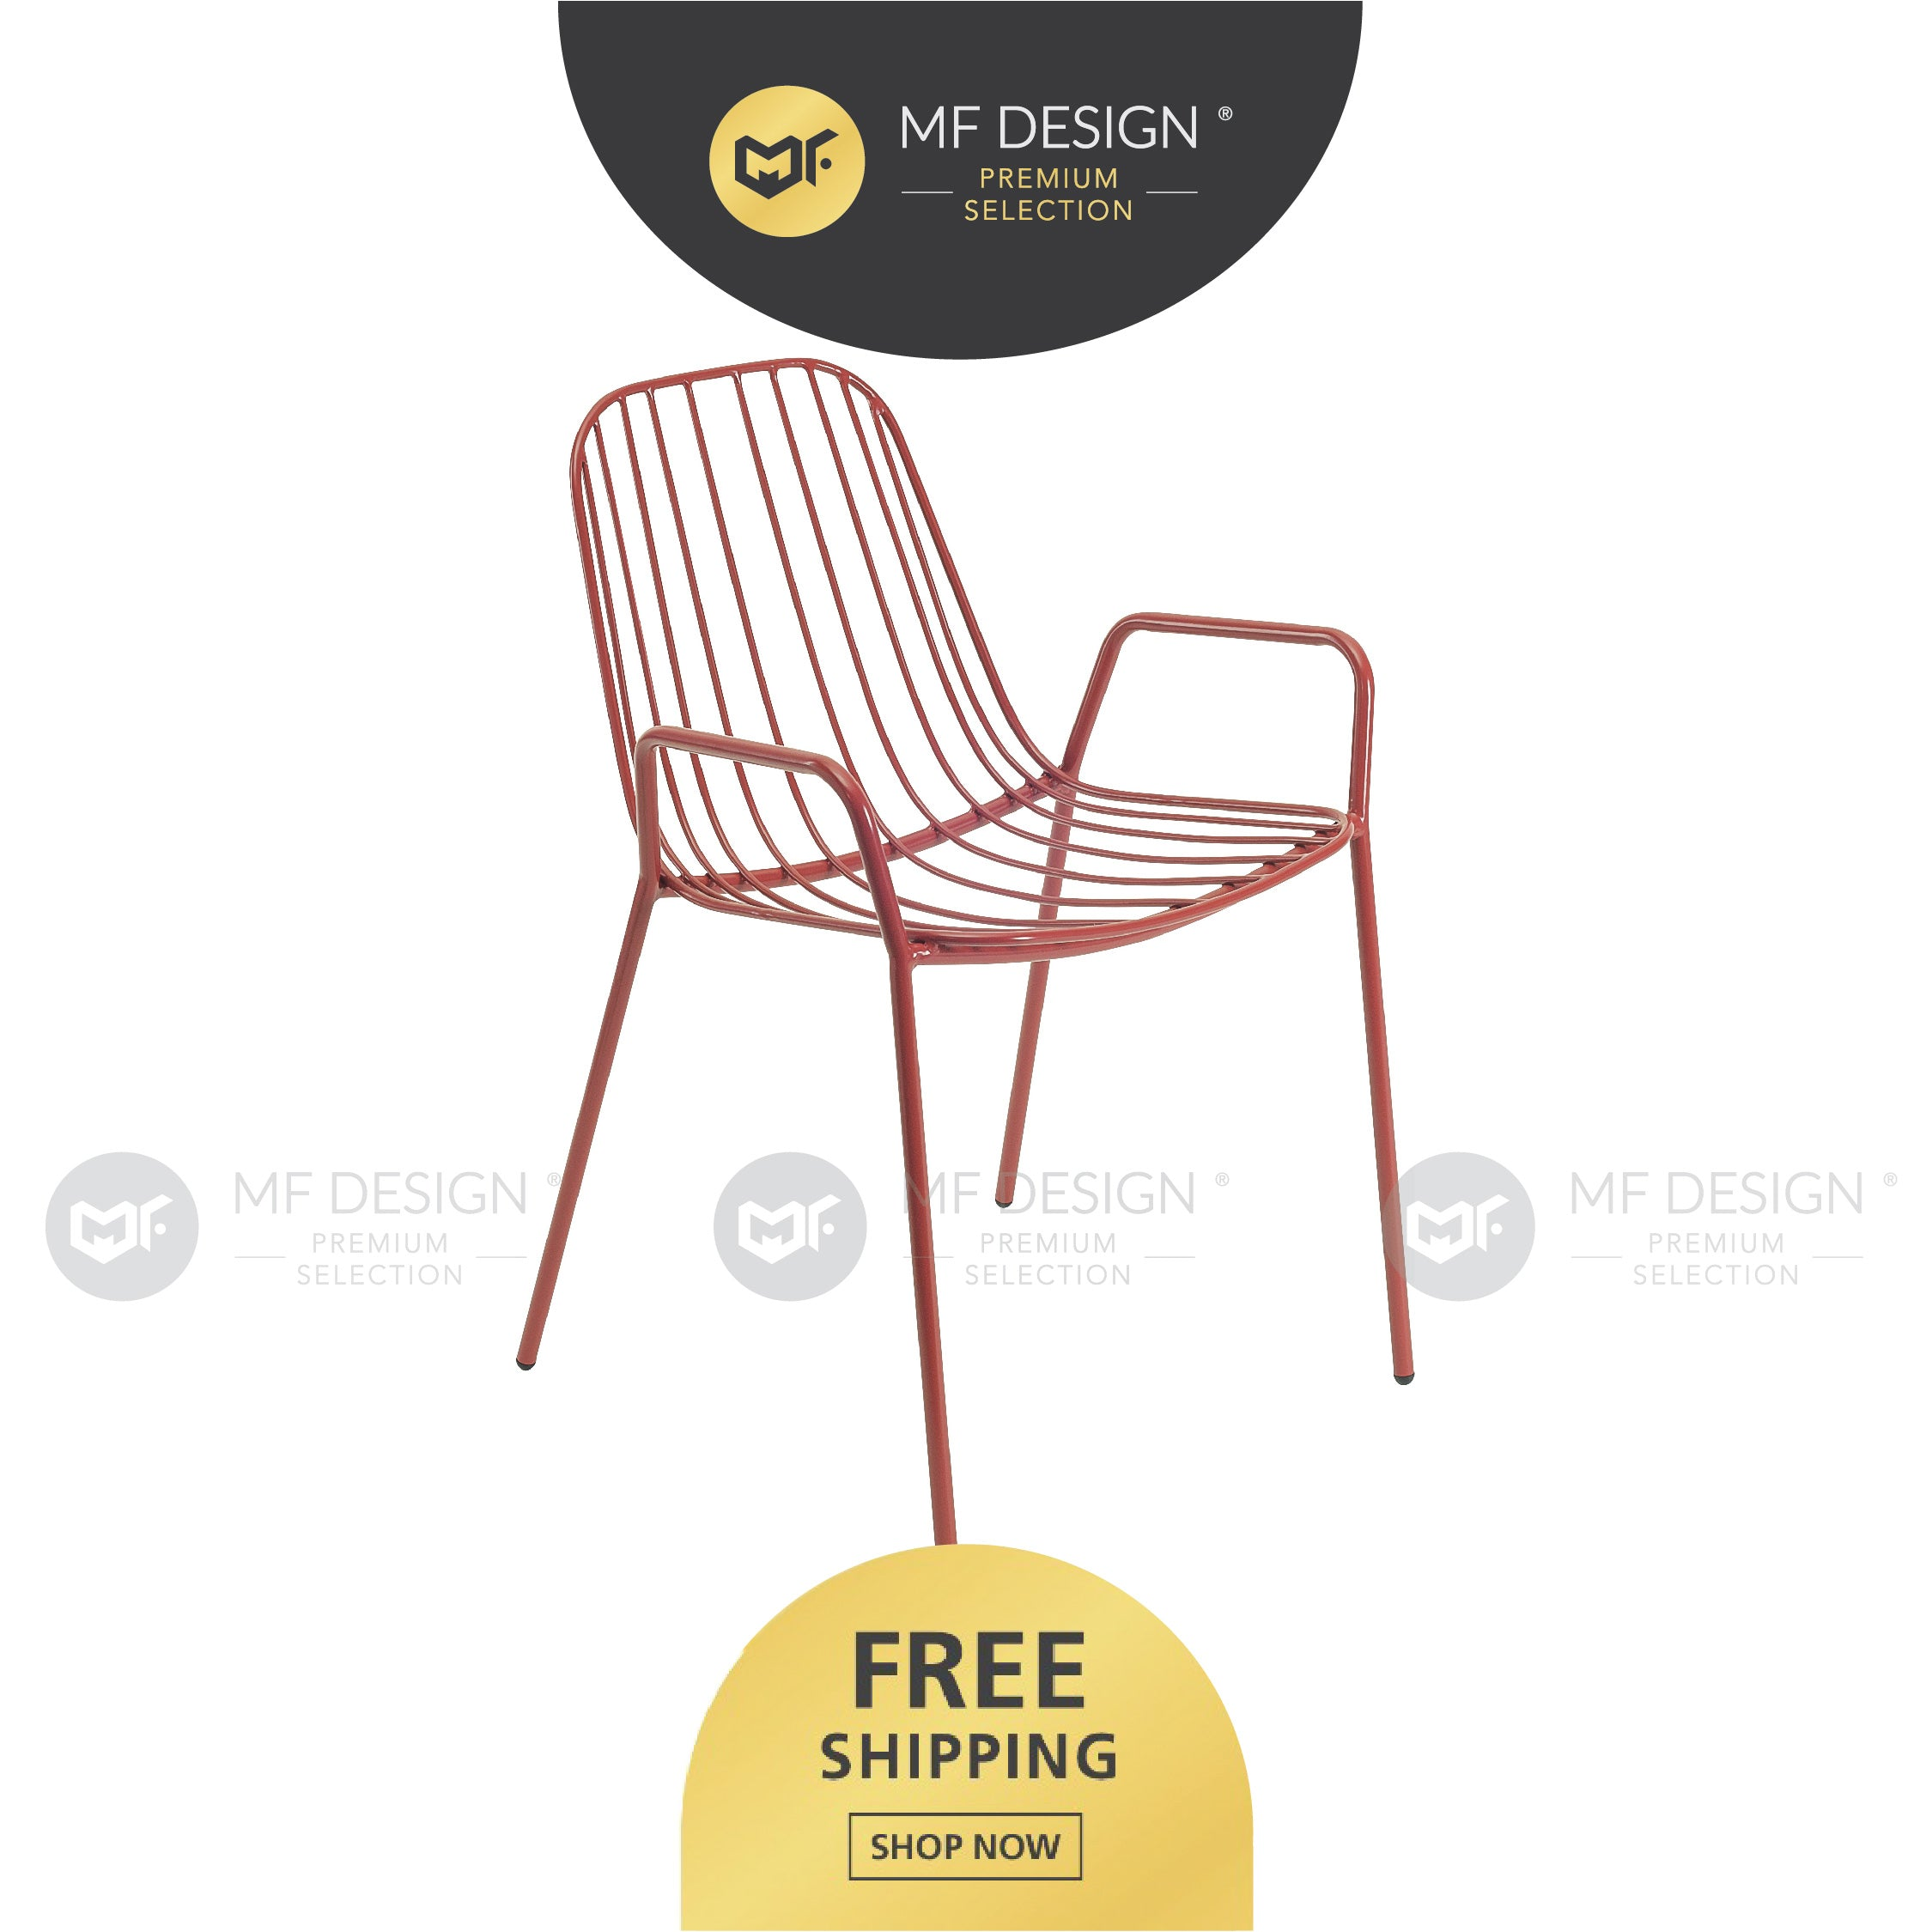 MFD Premium Nance Dining Chair / Wooden Chair / Solid Rubber Wood / Kerusi Makan Kayu Getah / Living Room / Scandinavian